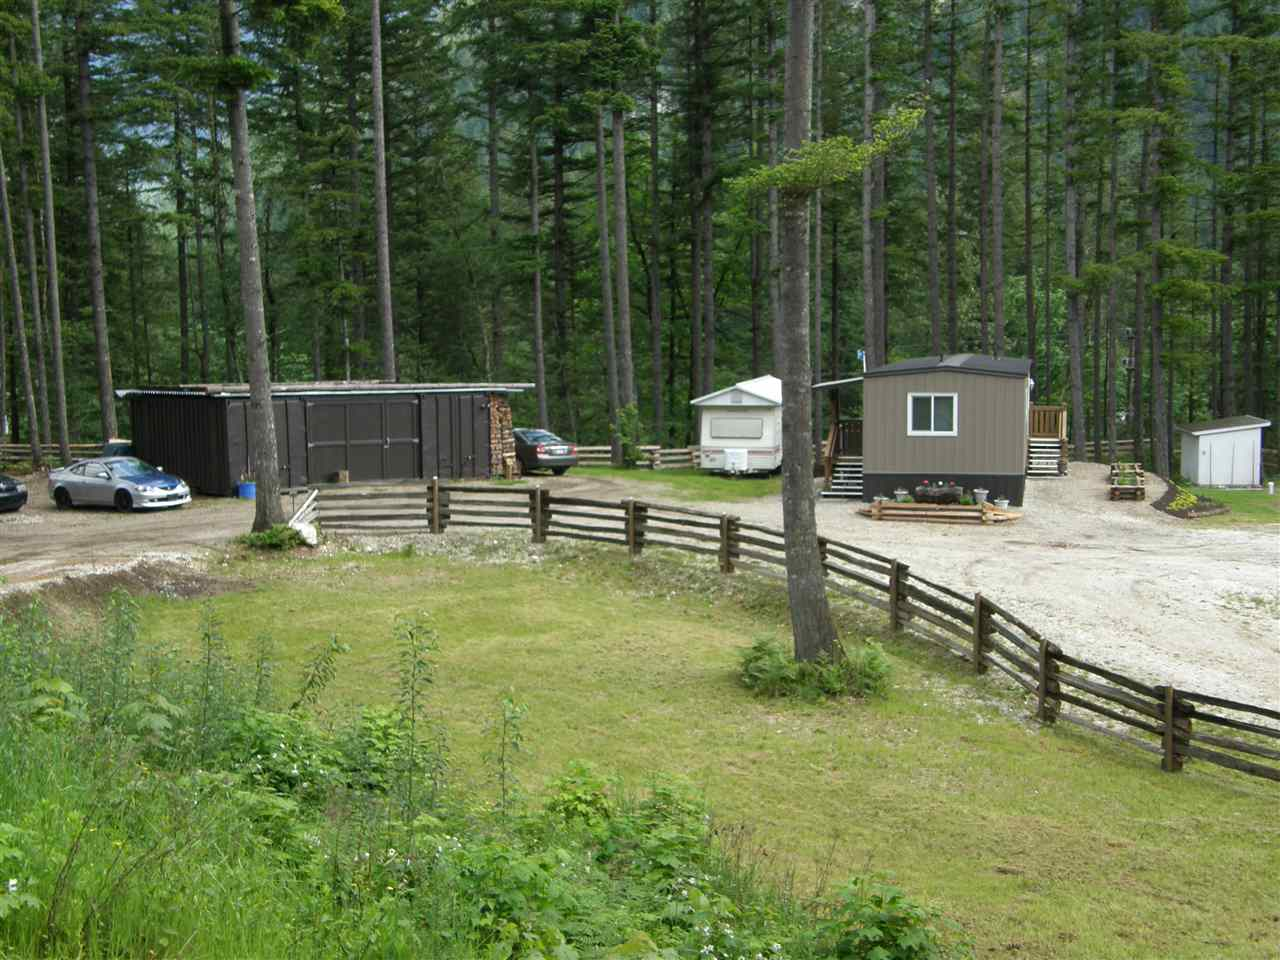 Removed: 23775 American Creek Road, Hope, BC - Removed on 2020-06-29 23:45:56